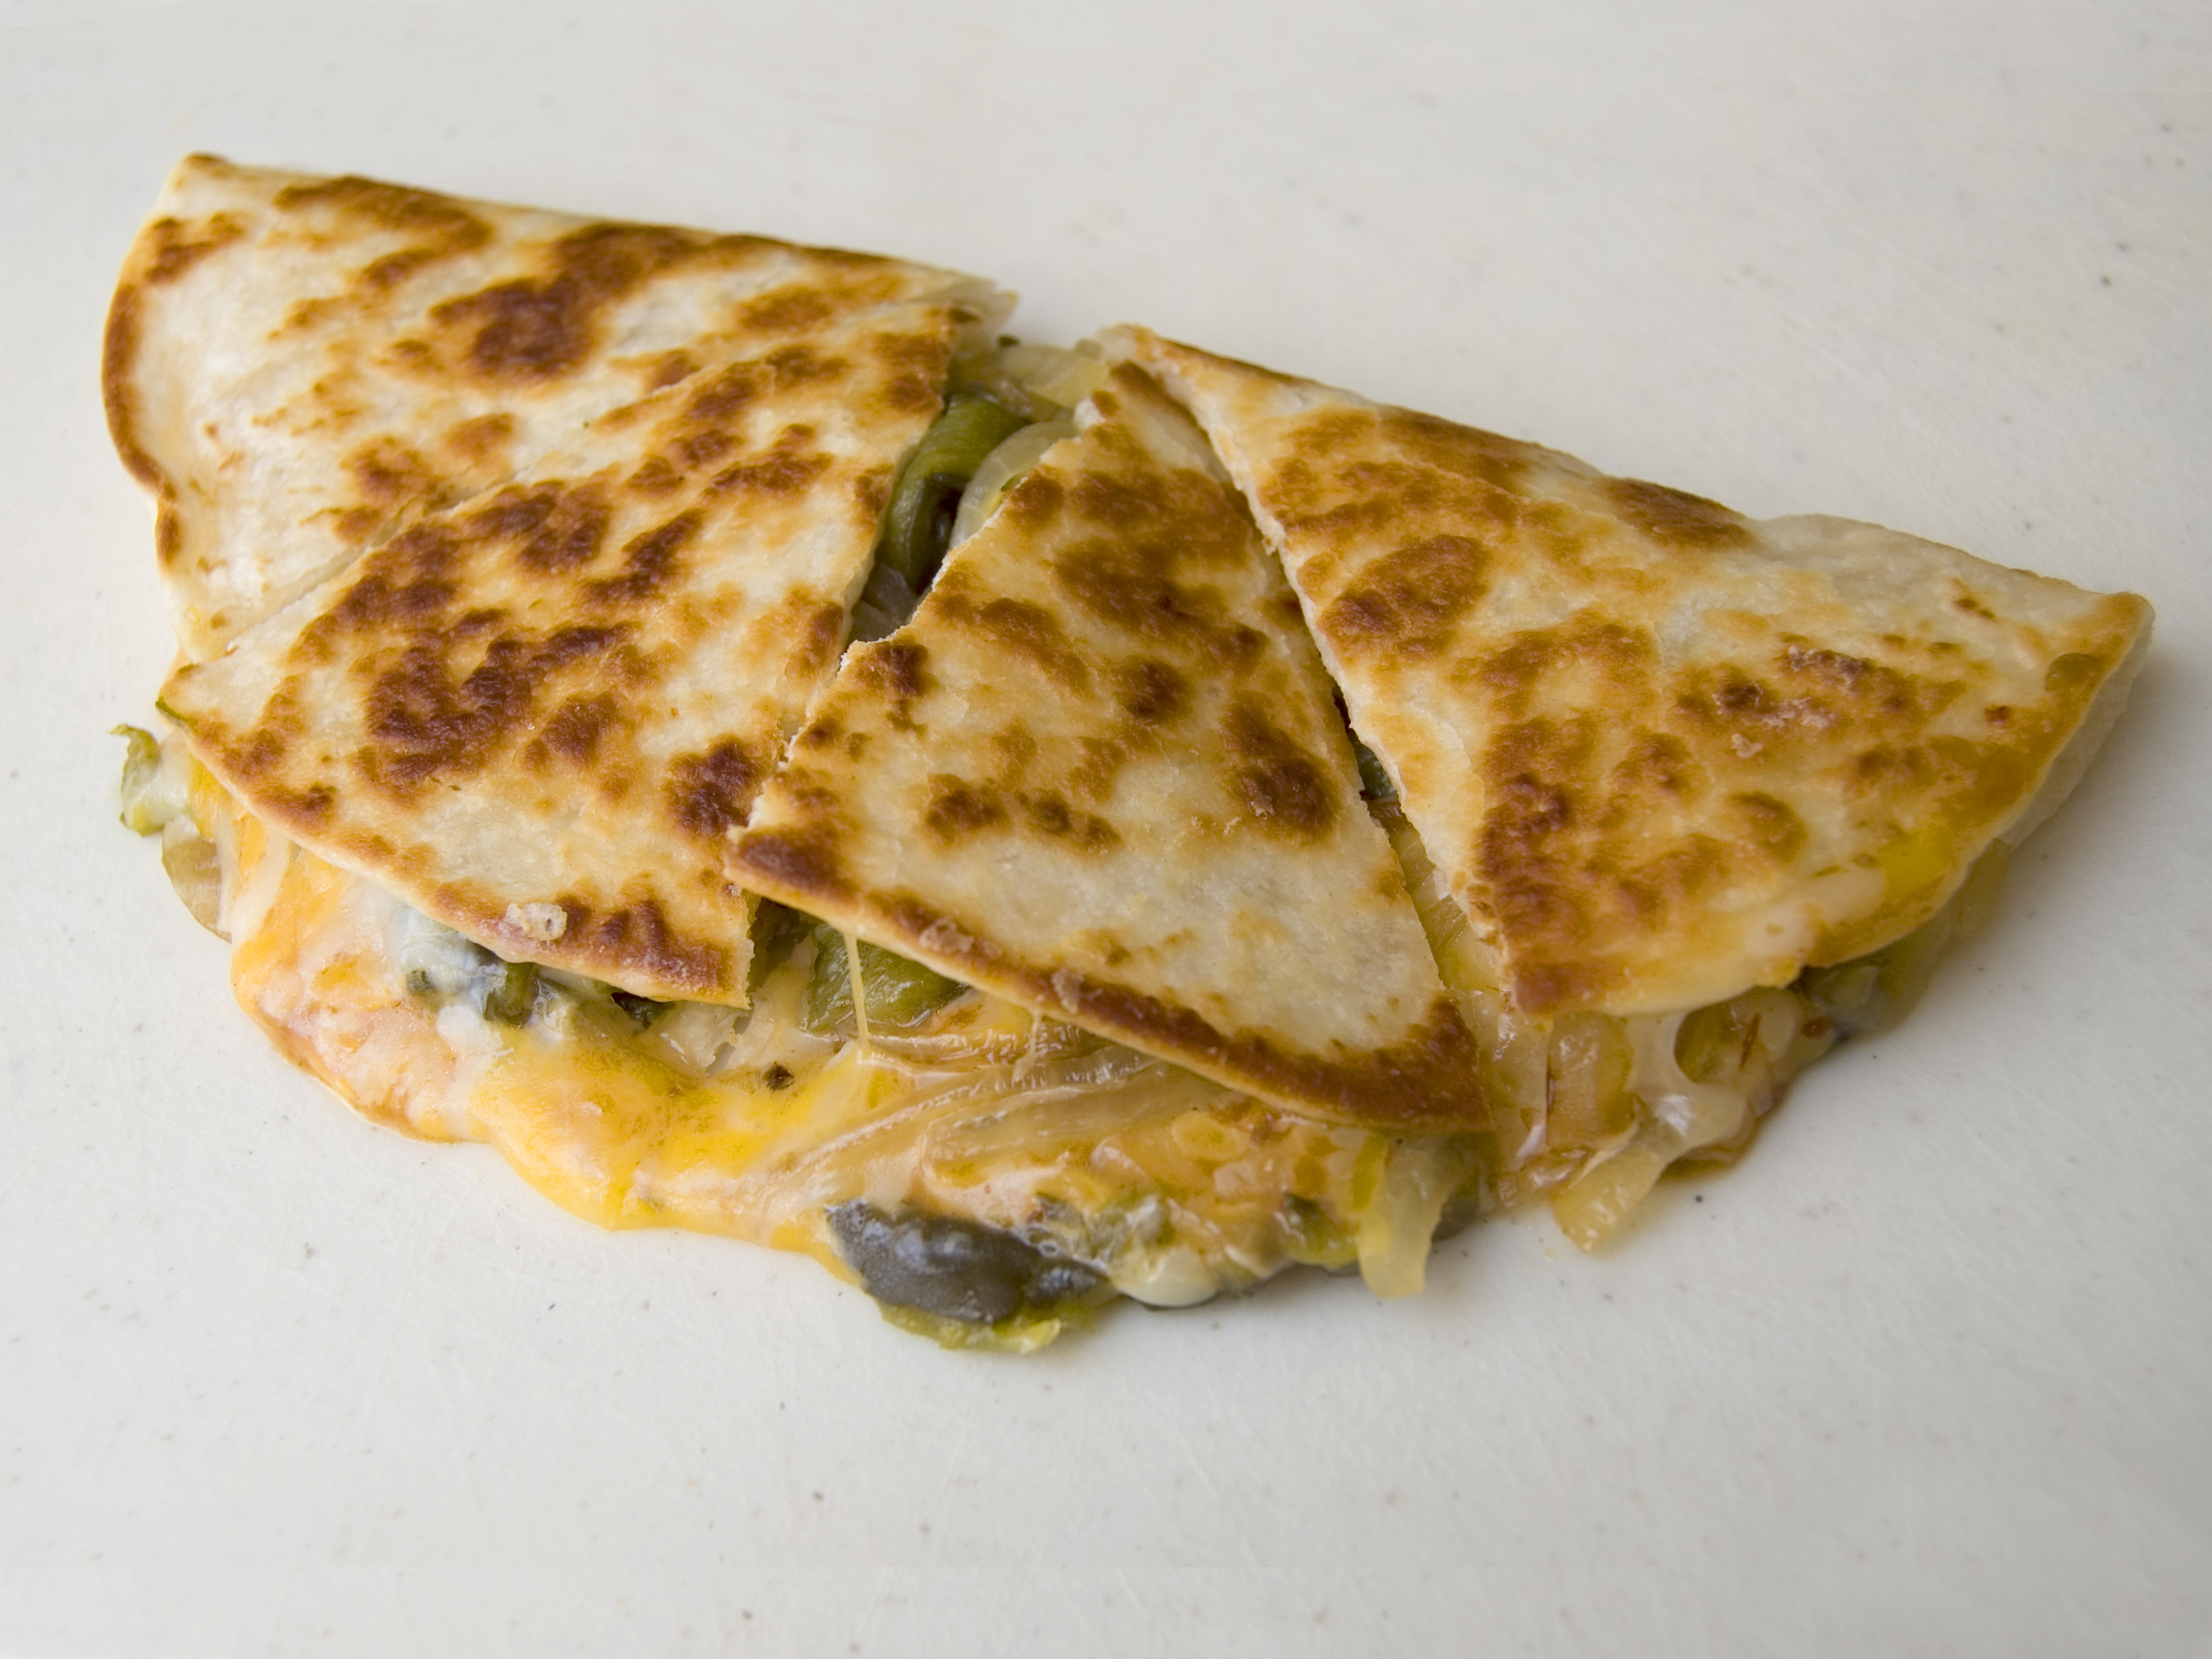 Archivo:Cut-up quesadilla.jpg - Wikipedia, la enciclopedia libre